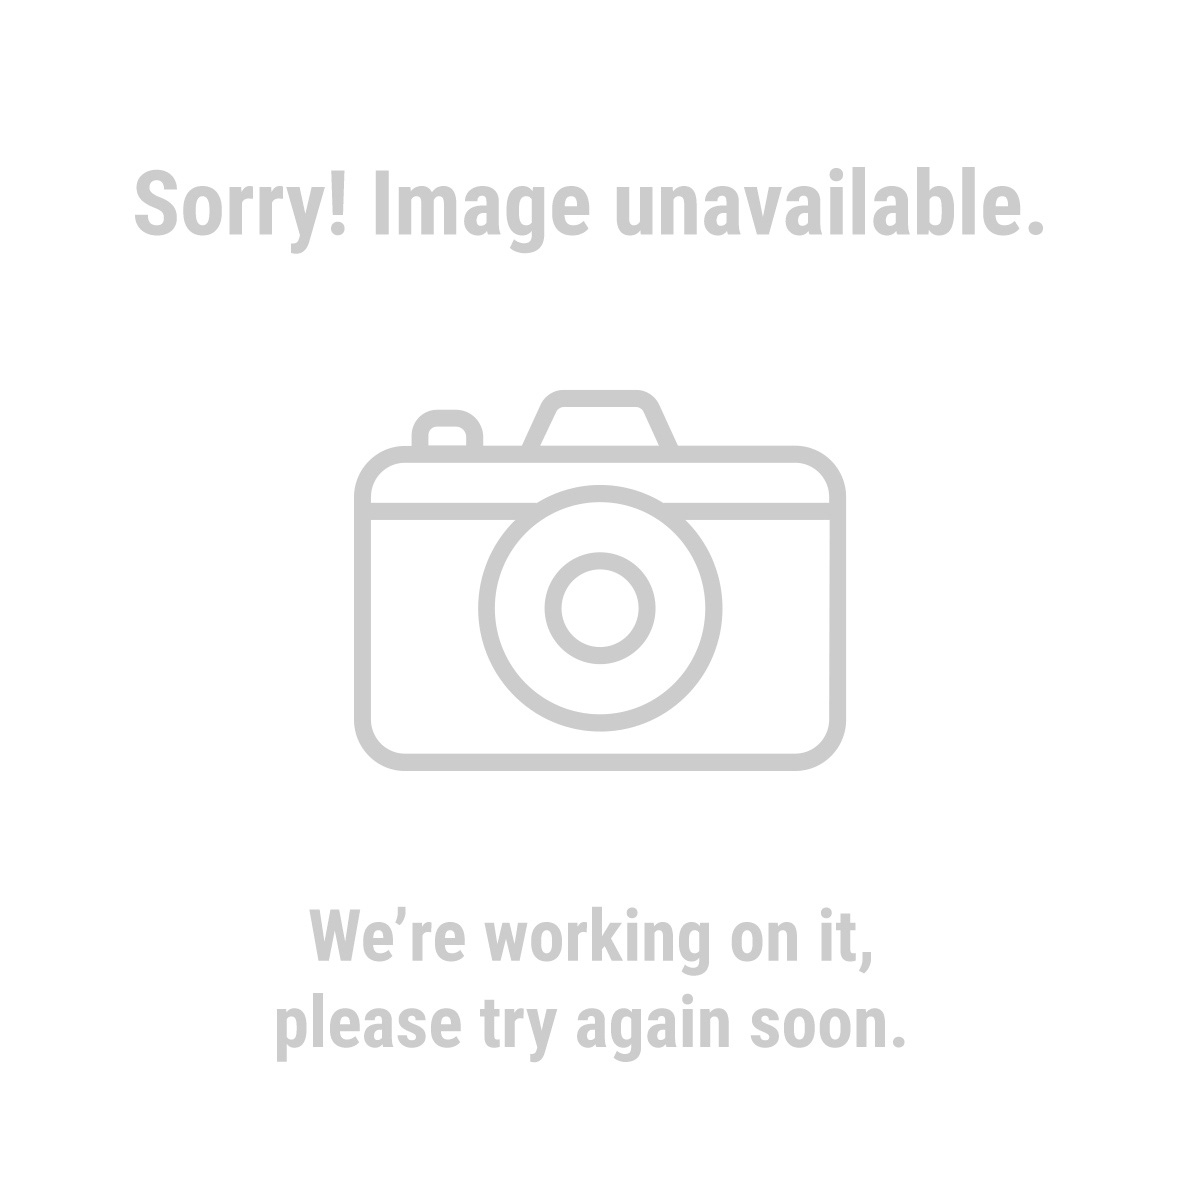 20 Ton H Frame Industrial Heavy Duty Floor Shop Press